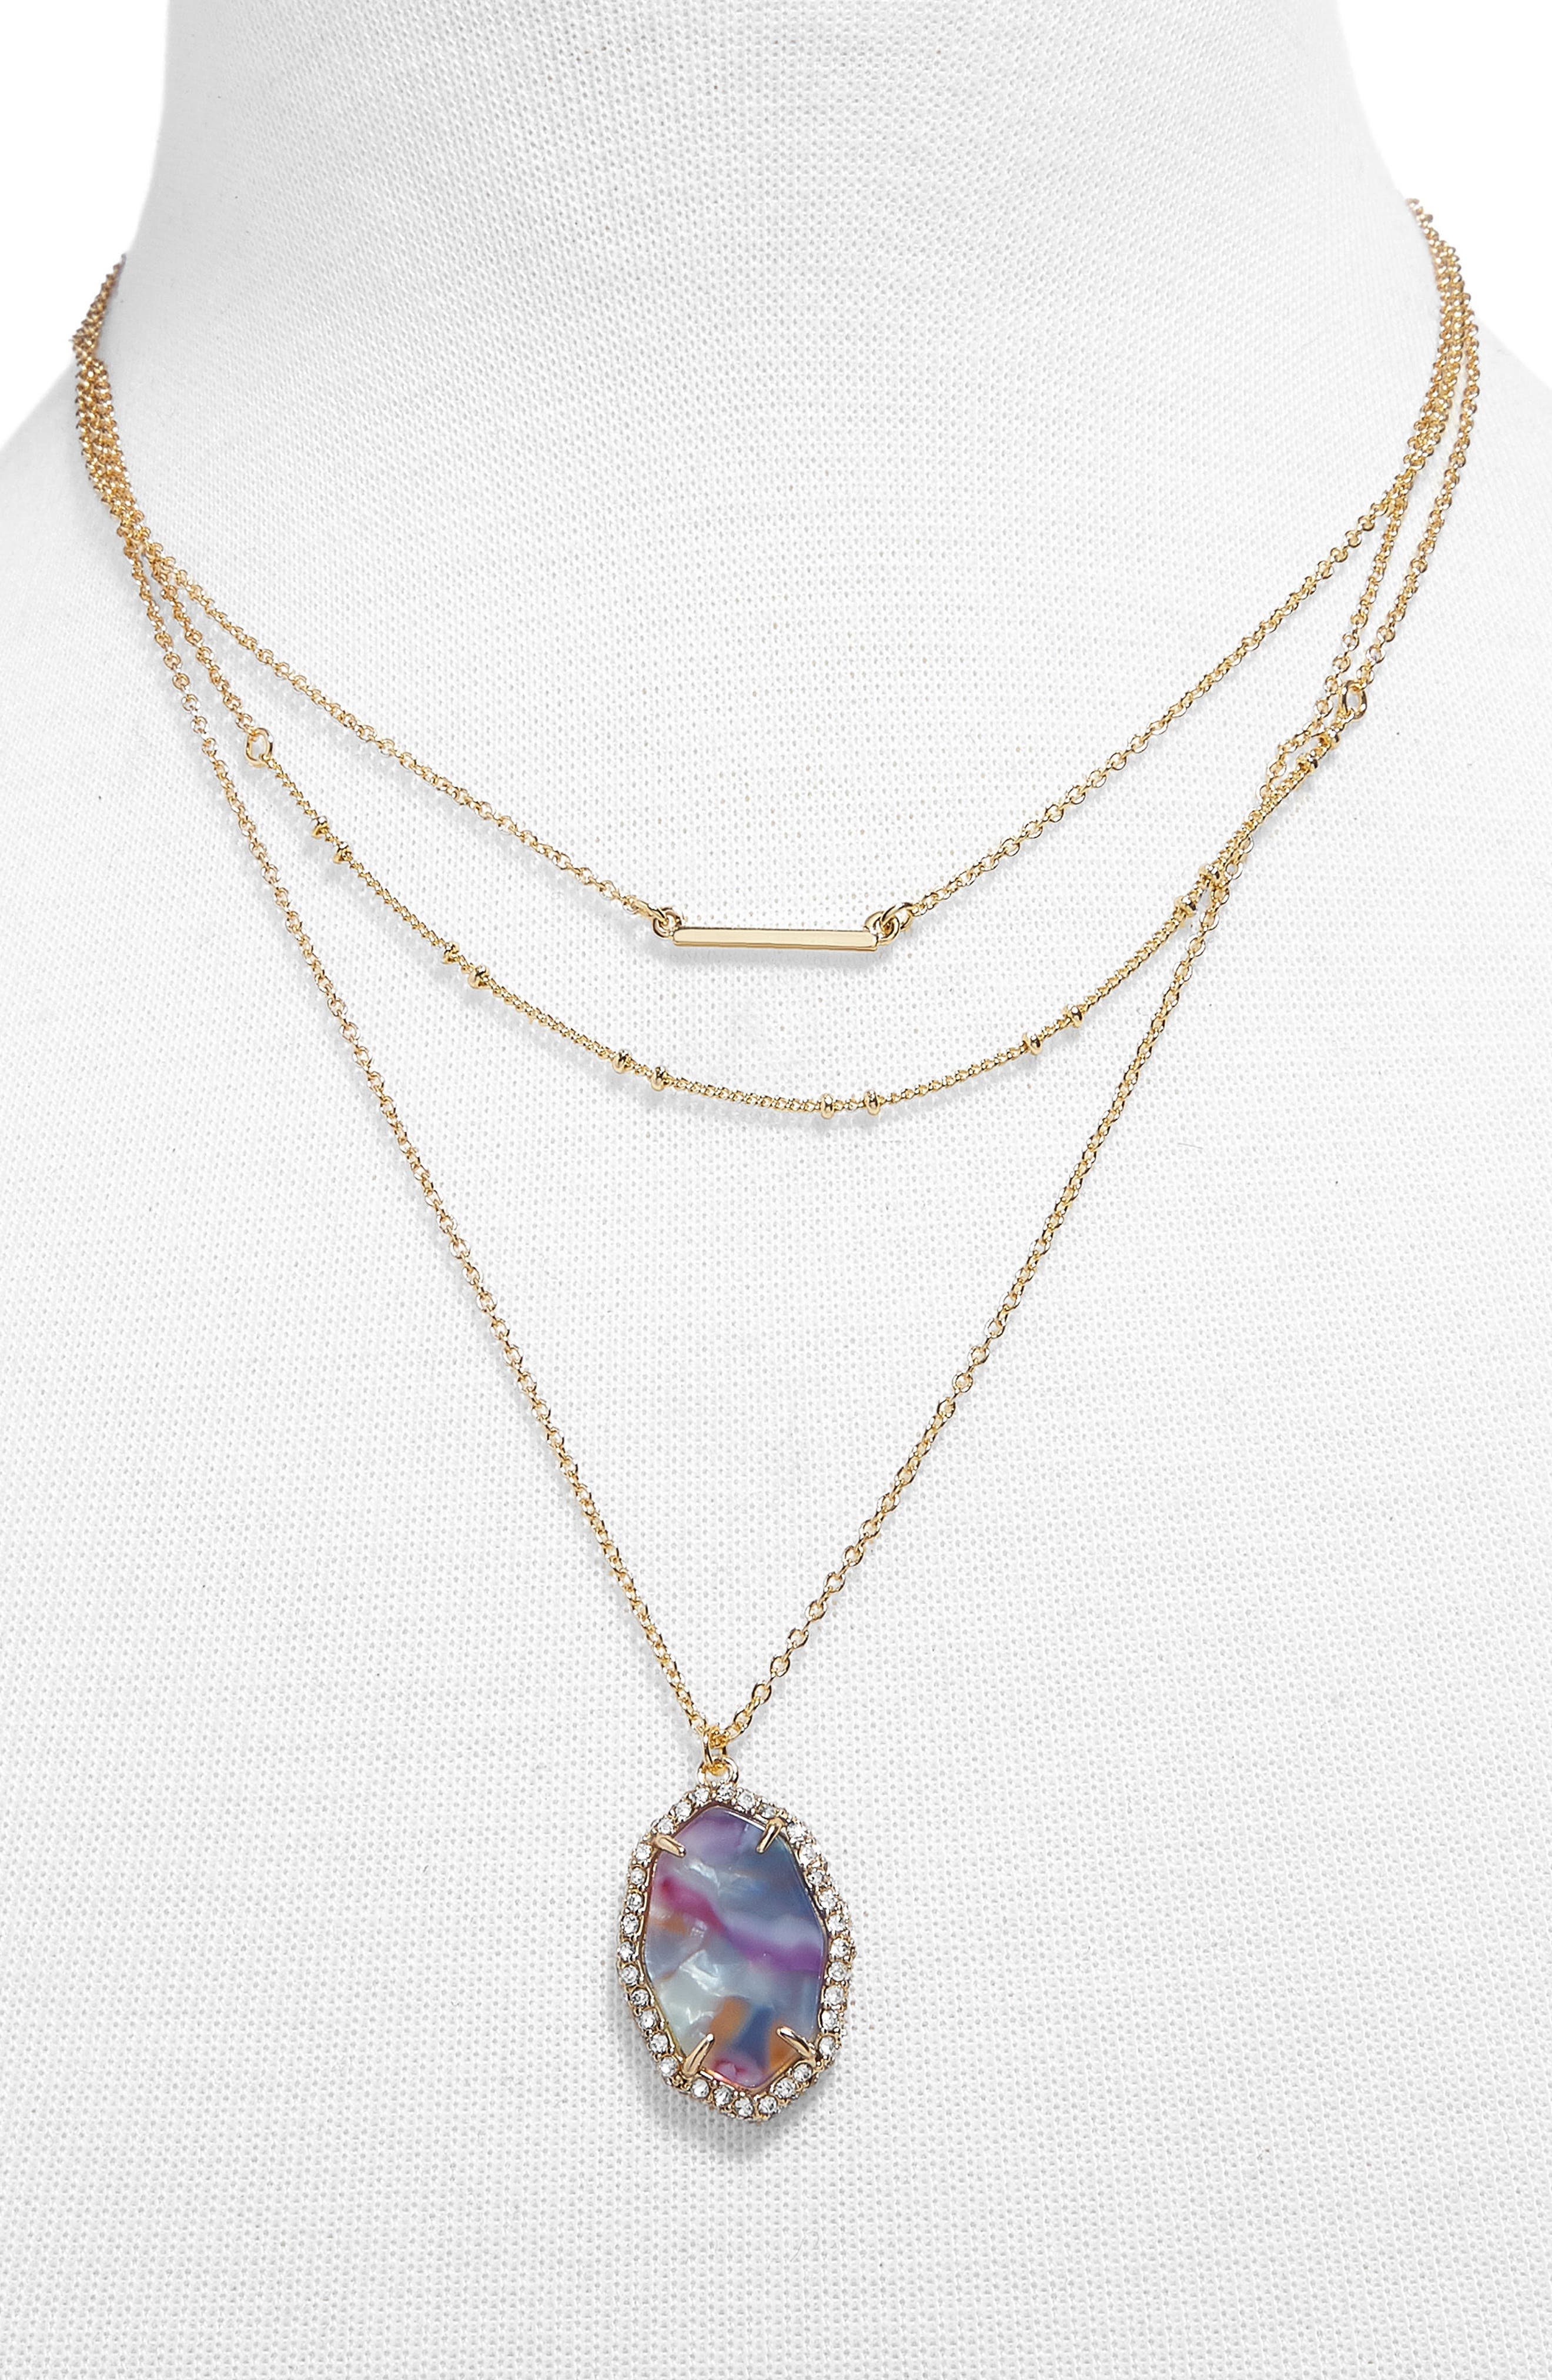 Ellory Layered Pendant Necklace,                         Main,                         color, 528